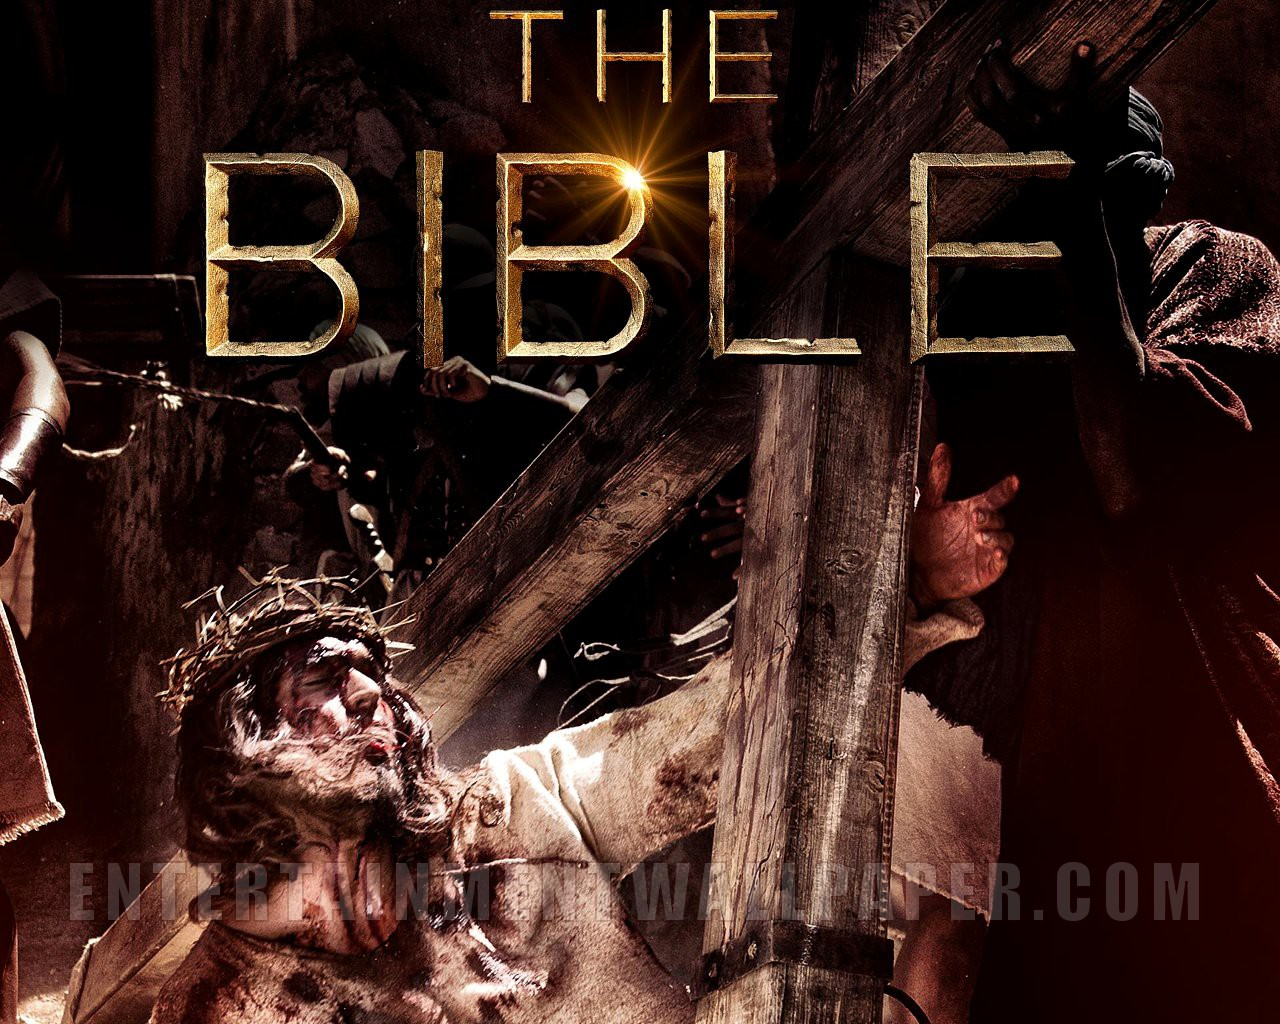 The Bible Wallpaper - Original size, download now.